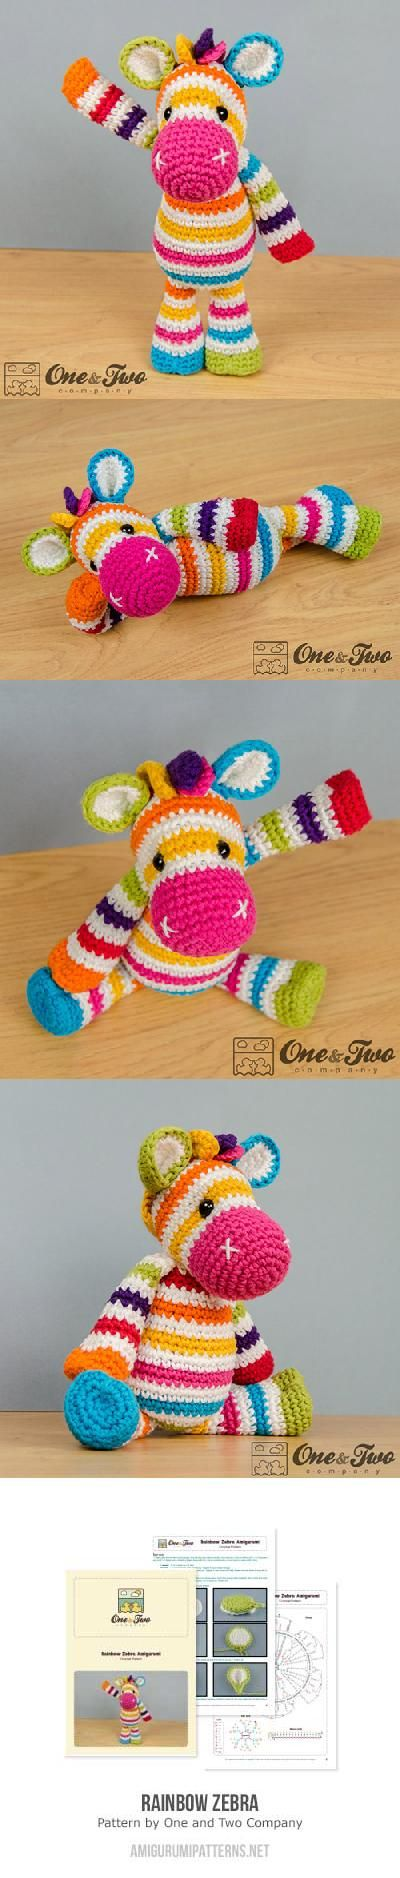 Found at Amigurumipatterns.net ༺✿ƬⱤღ  https://www.pinterest.com/teretegui/✿༻: